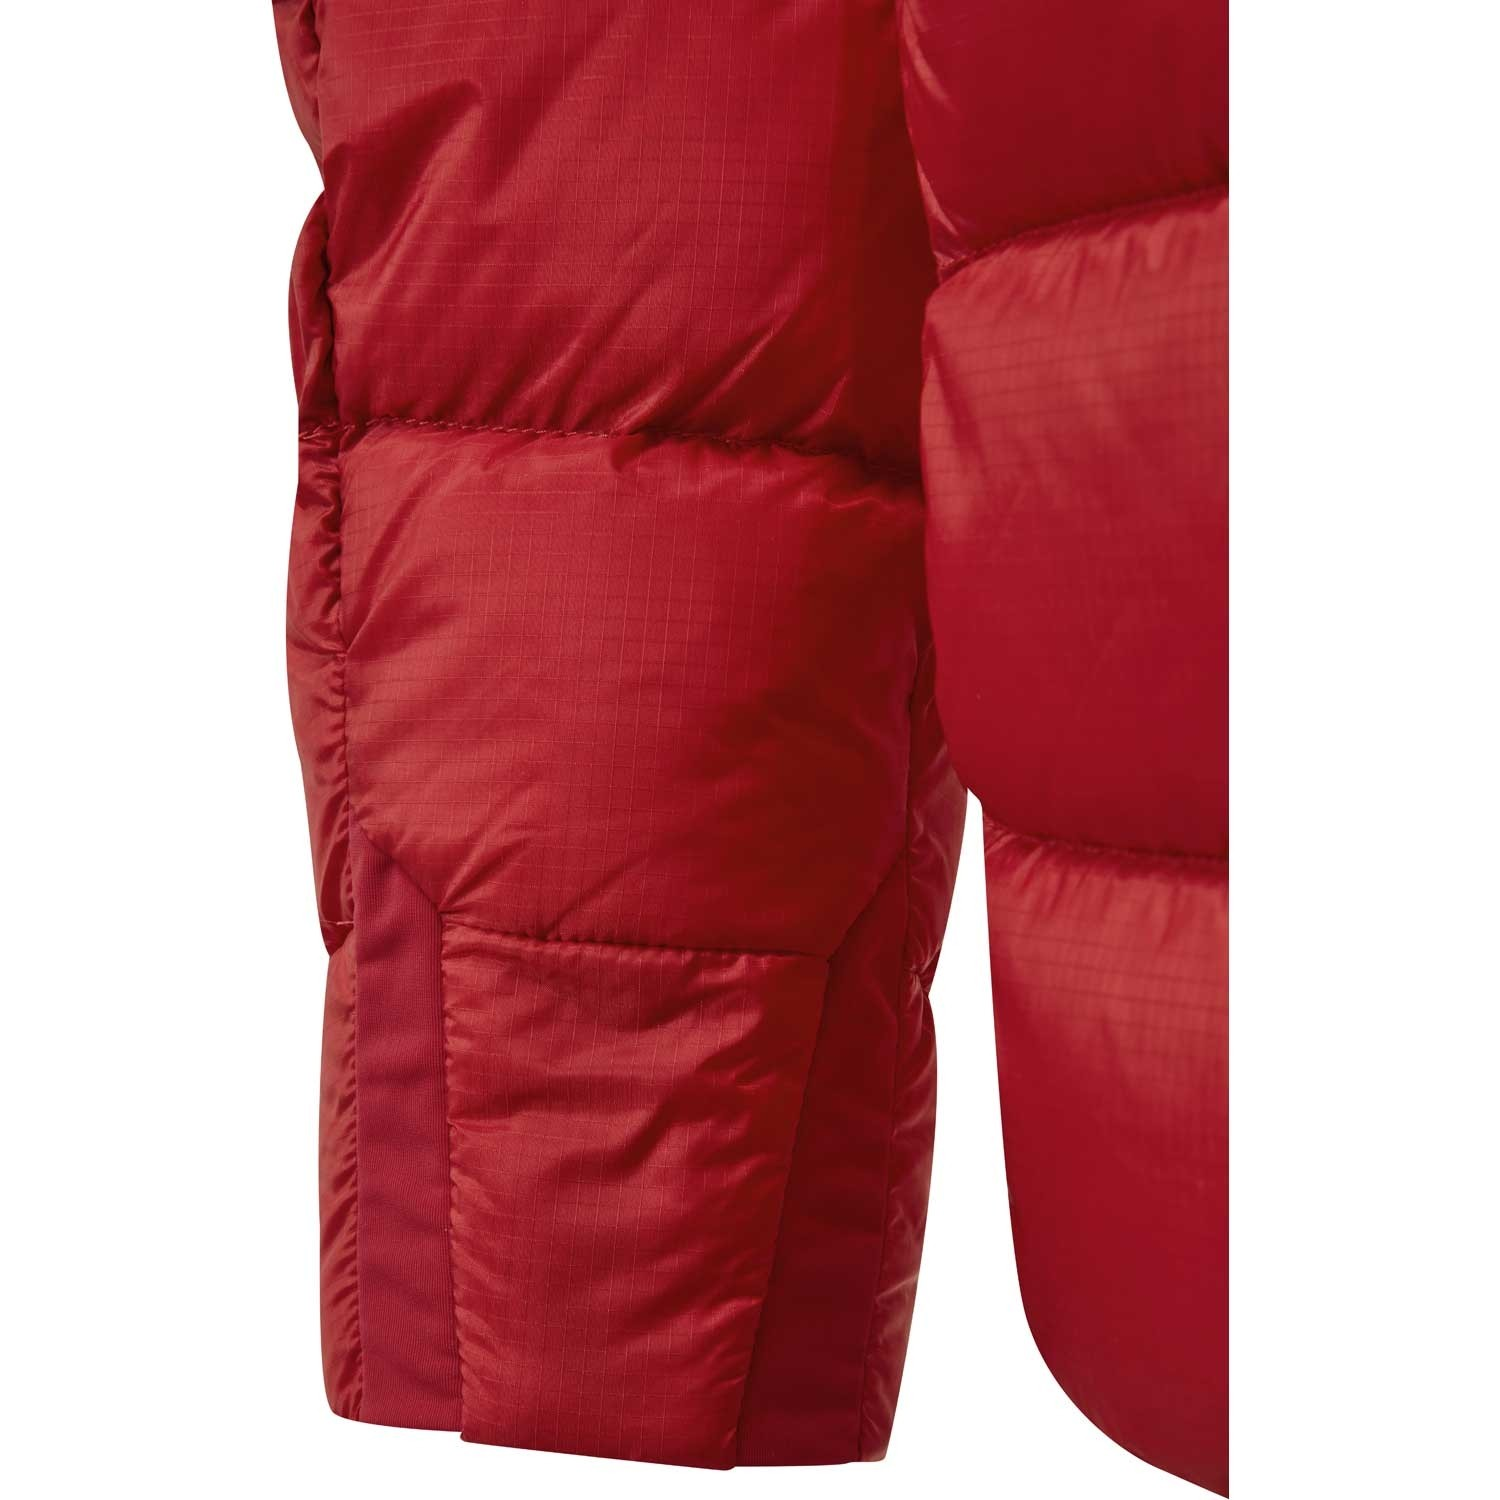 Electron Pro Down Jacket - Men's - Ascent Red